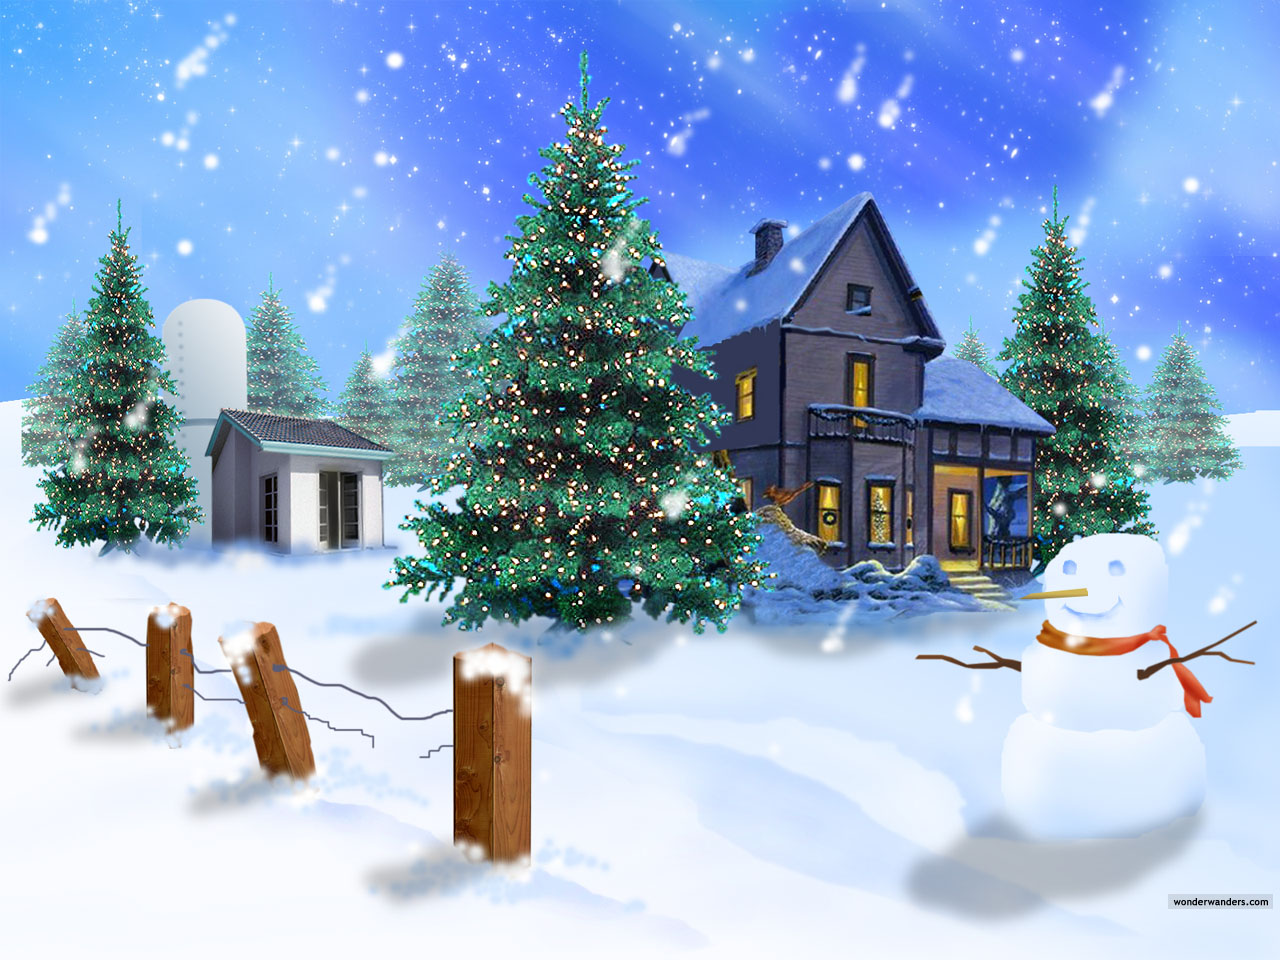 Cute Animals Playing Soccer Wallpaper Animals Zoo Park Free Christmas Snowman Wallpapers For